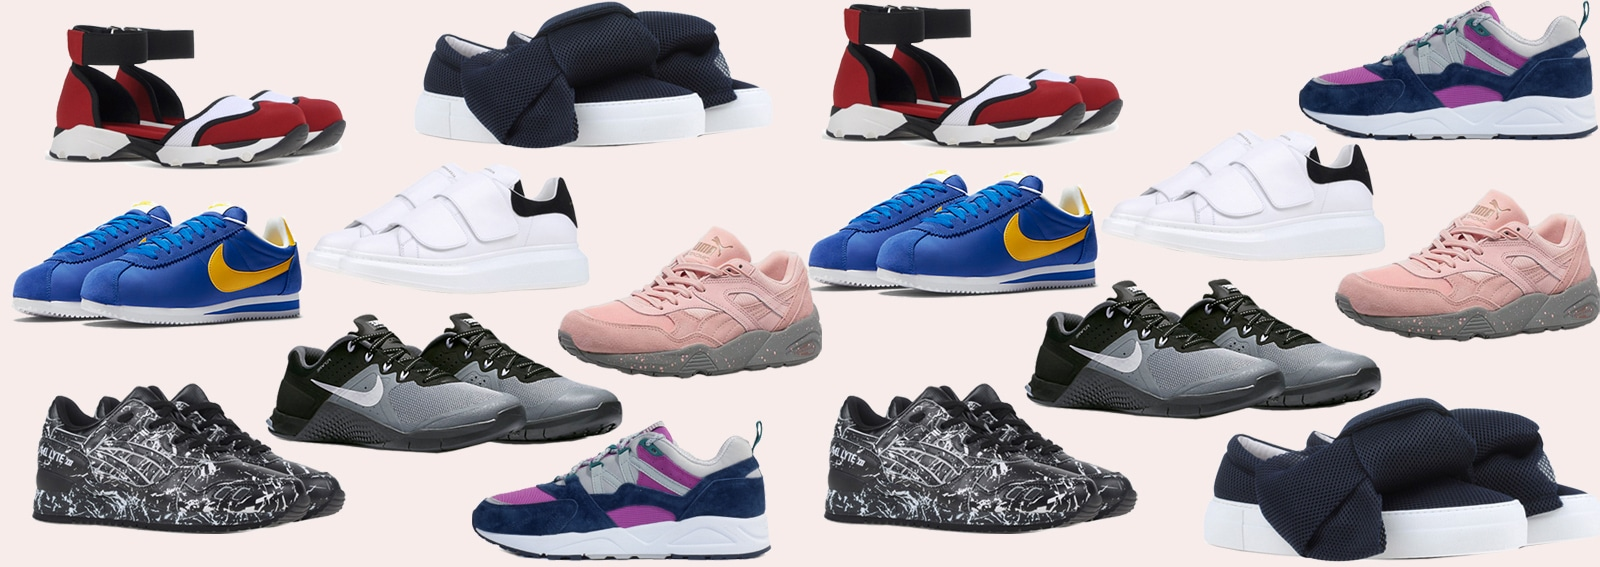 cover sneakers pe 2016 dekstop